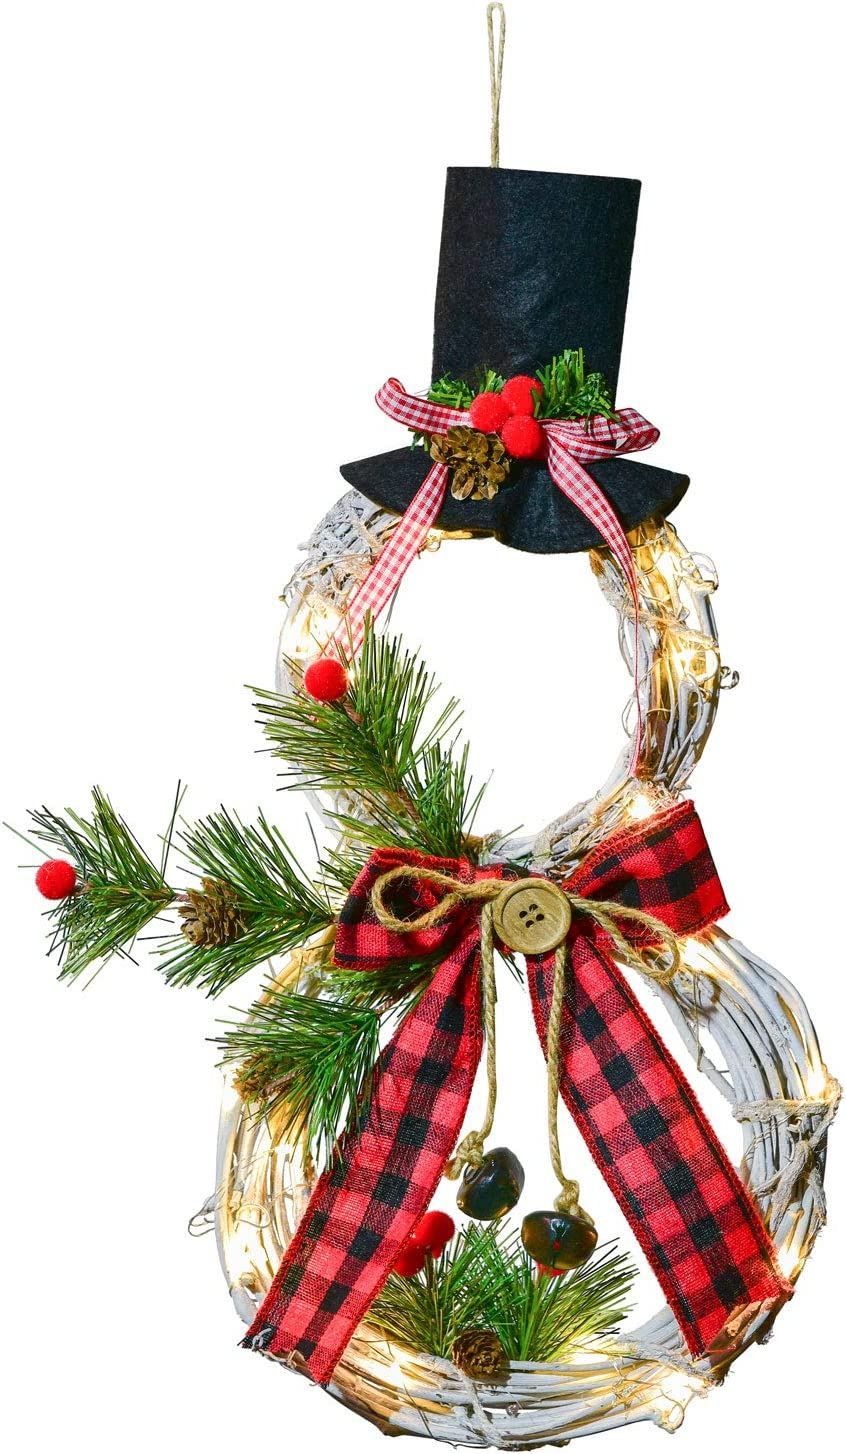 Artiflr 16 x 8 Inch Lighted Christmas Wreath Decoration, Grapevine Wreath with Hat and Bow Snowman Shape Wreath for Front Door Home Wall Decor (Red)